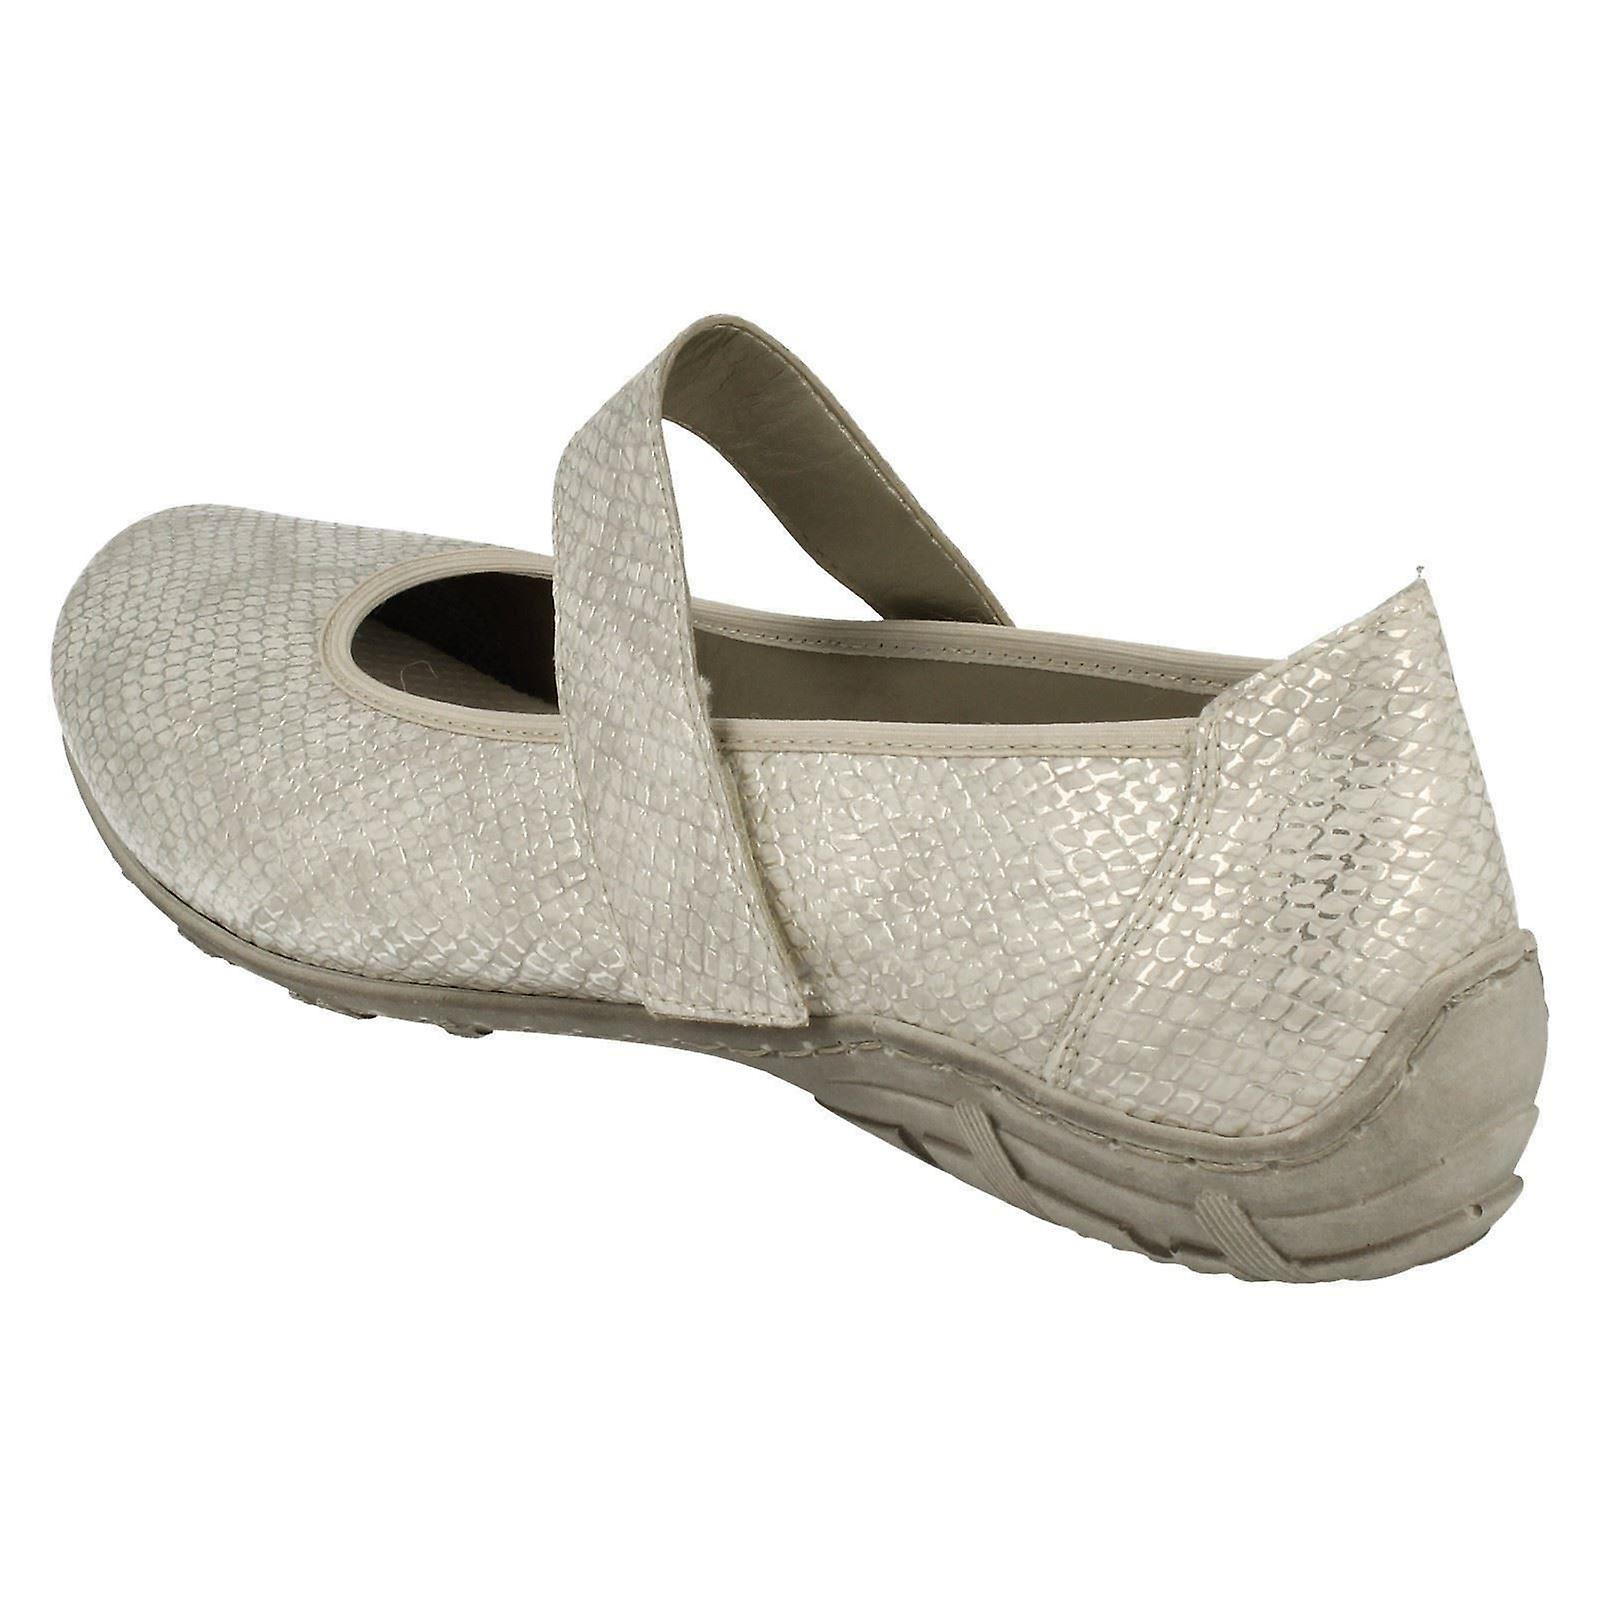 mesdames mesdames mesdames rieker, mary jane l2062 style chaussures 799d10